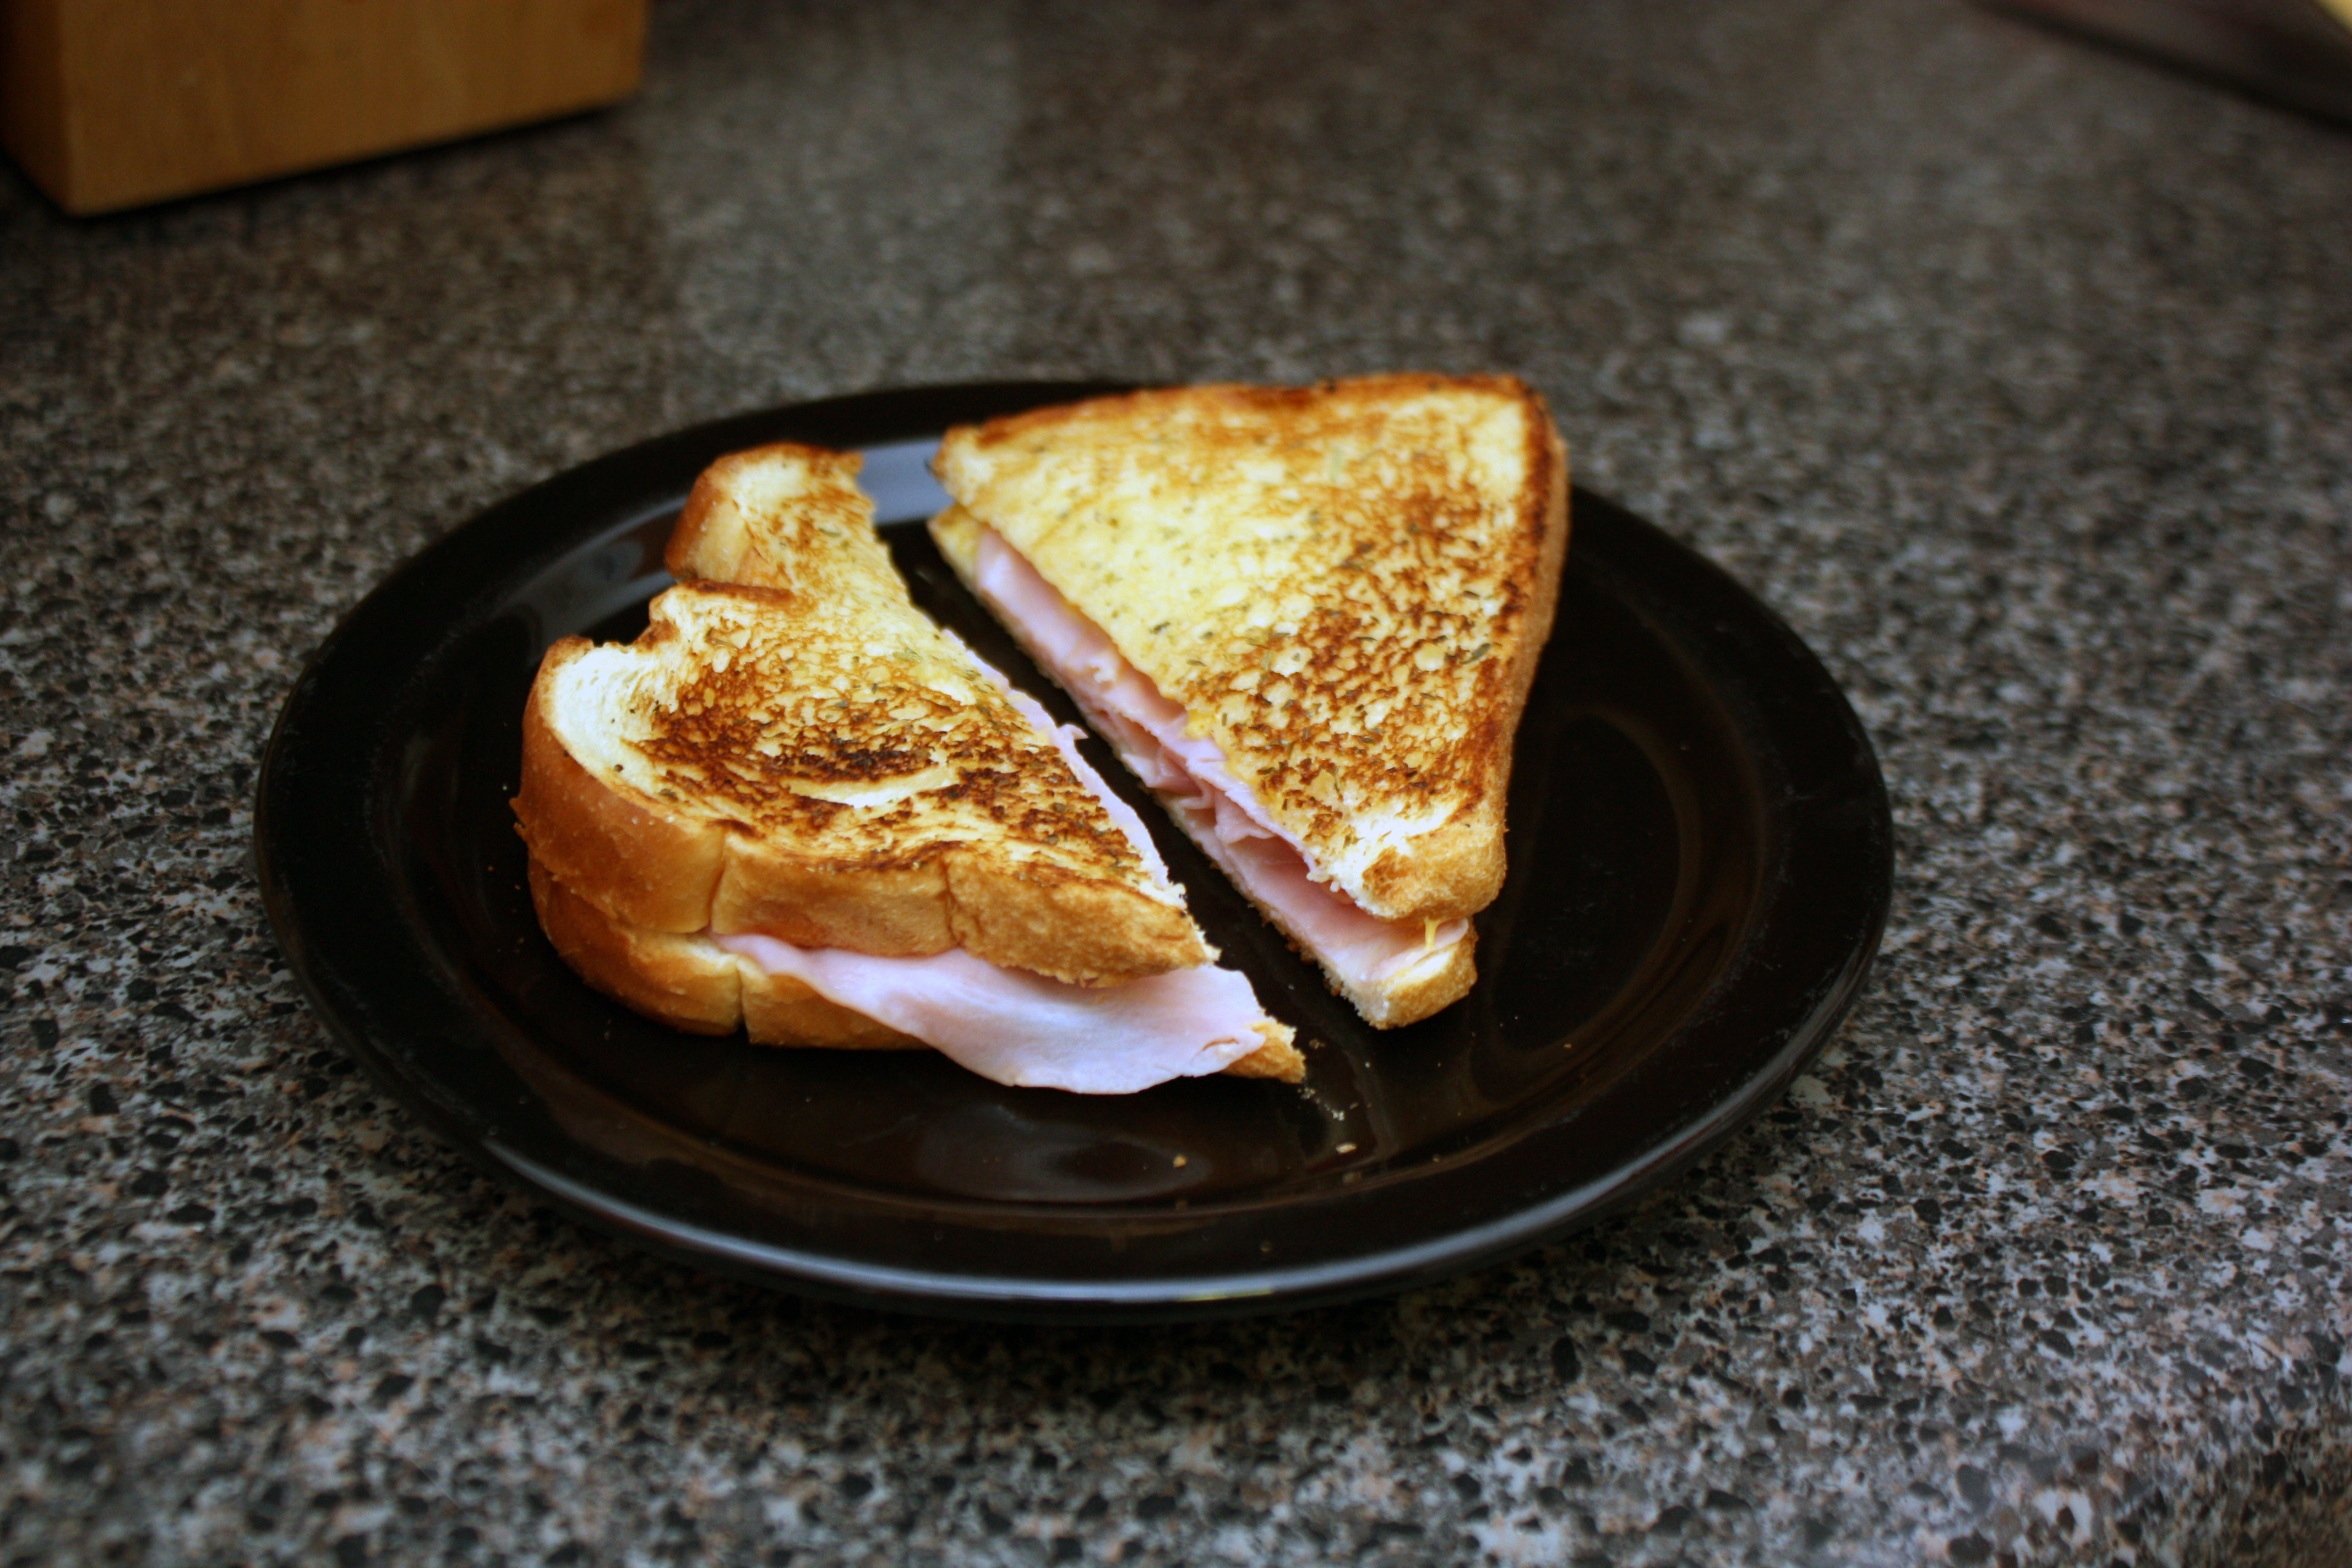 Classic Hot Ham and Cheese with a Garlic Italian Twist